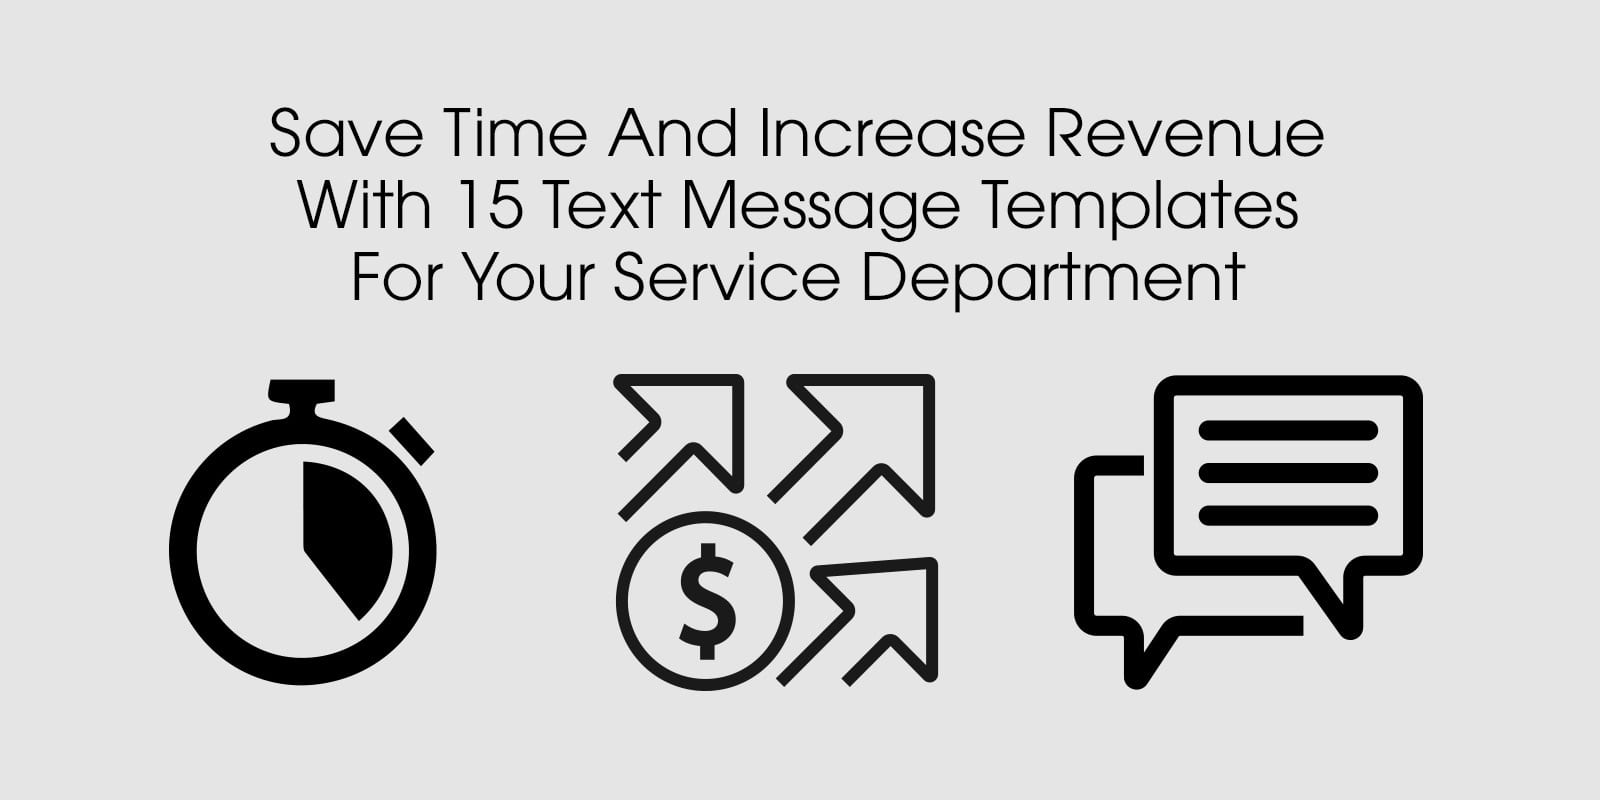 save time and increase revenue with 15 text message templates for your service department